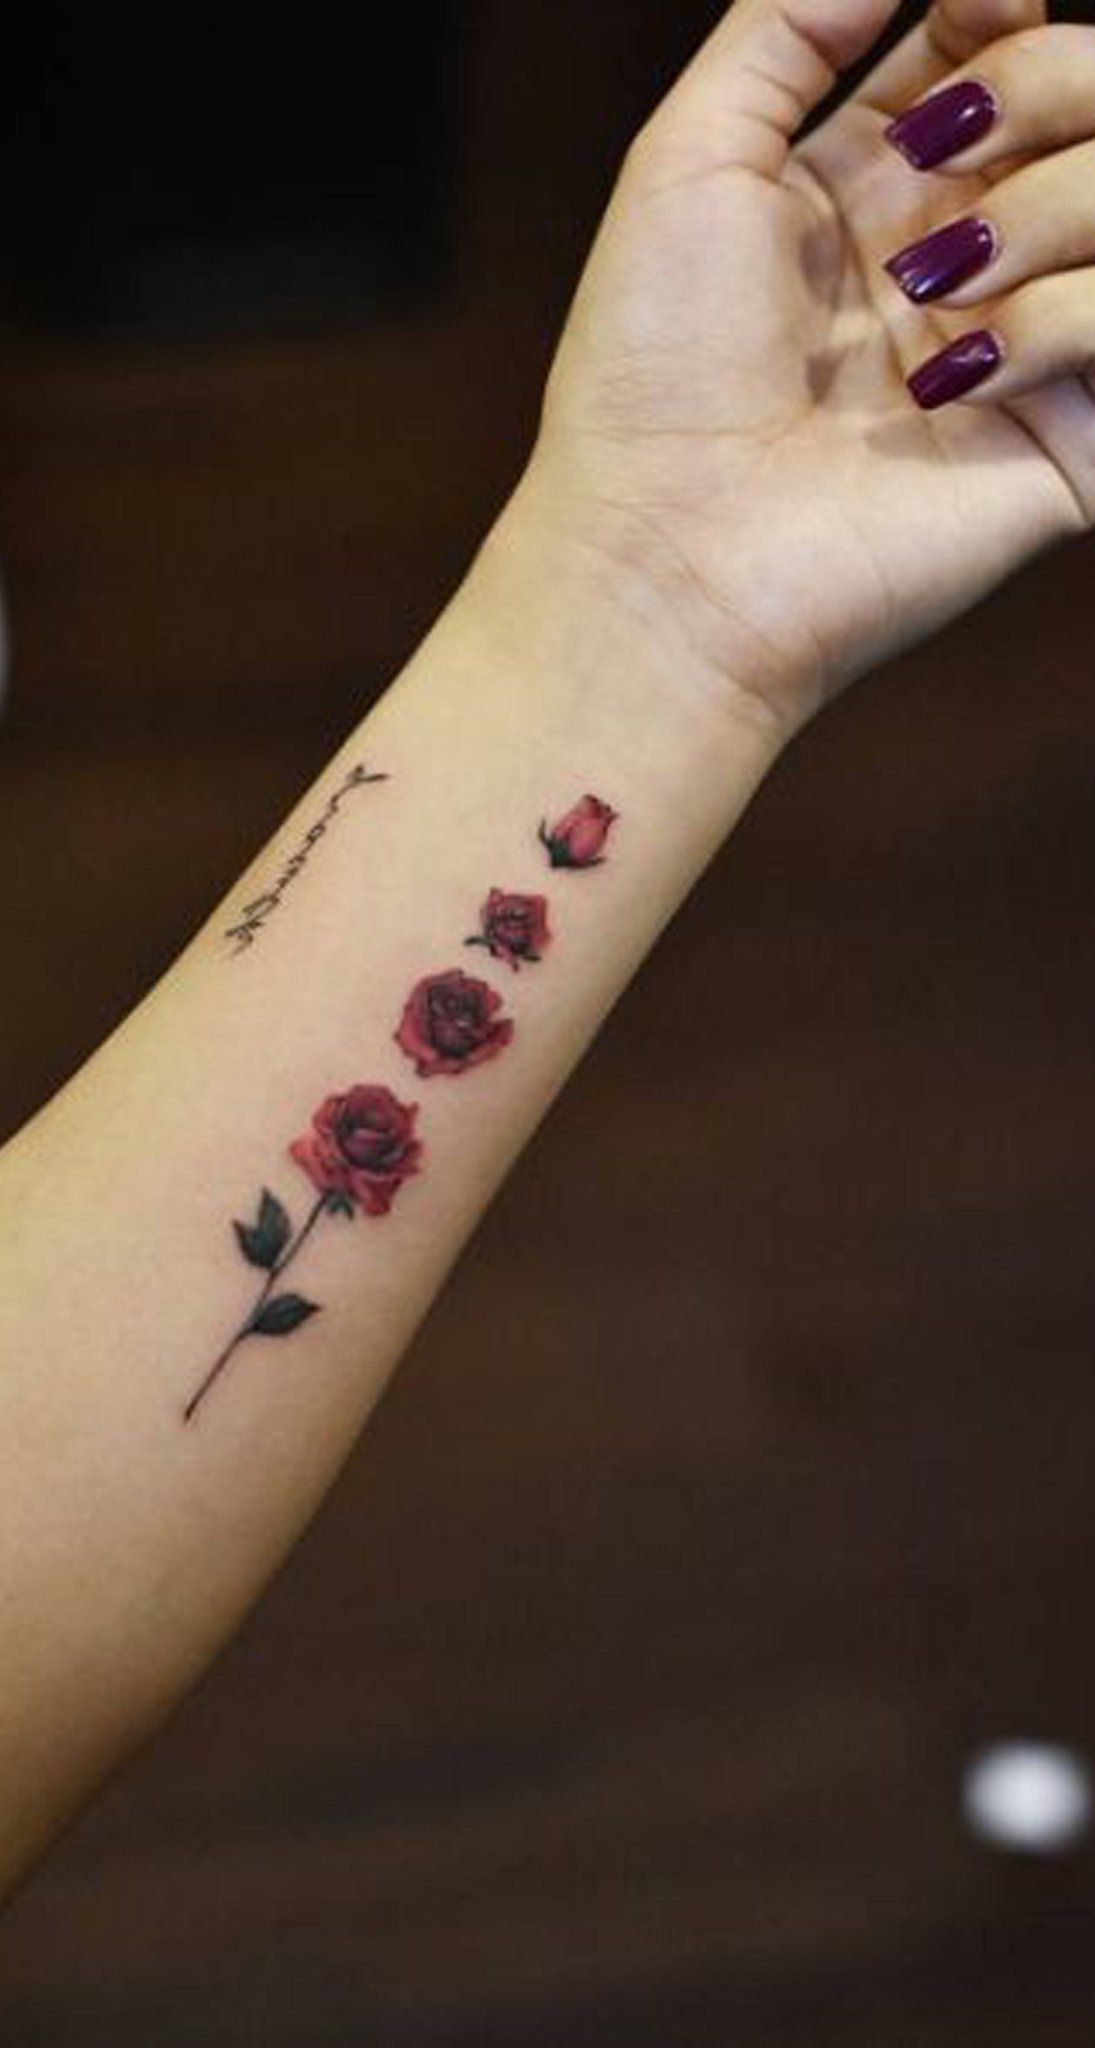 Rose Tattoos Flower: 30+ Simple And Small Flower Tattoos Ideas For Women